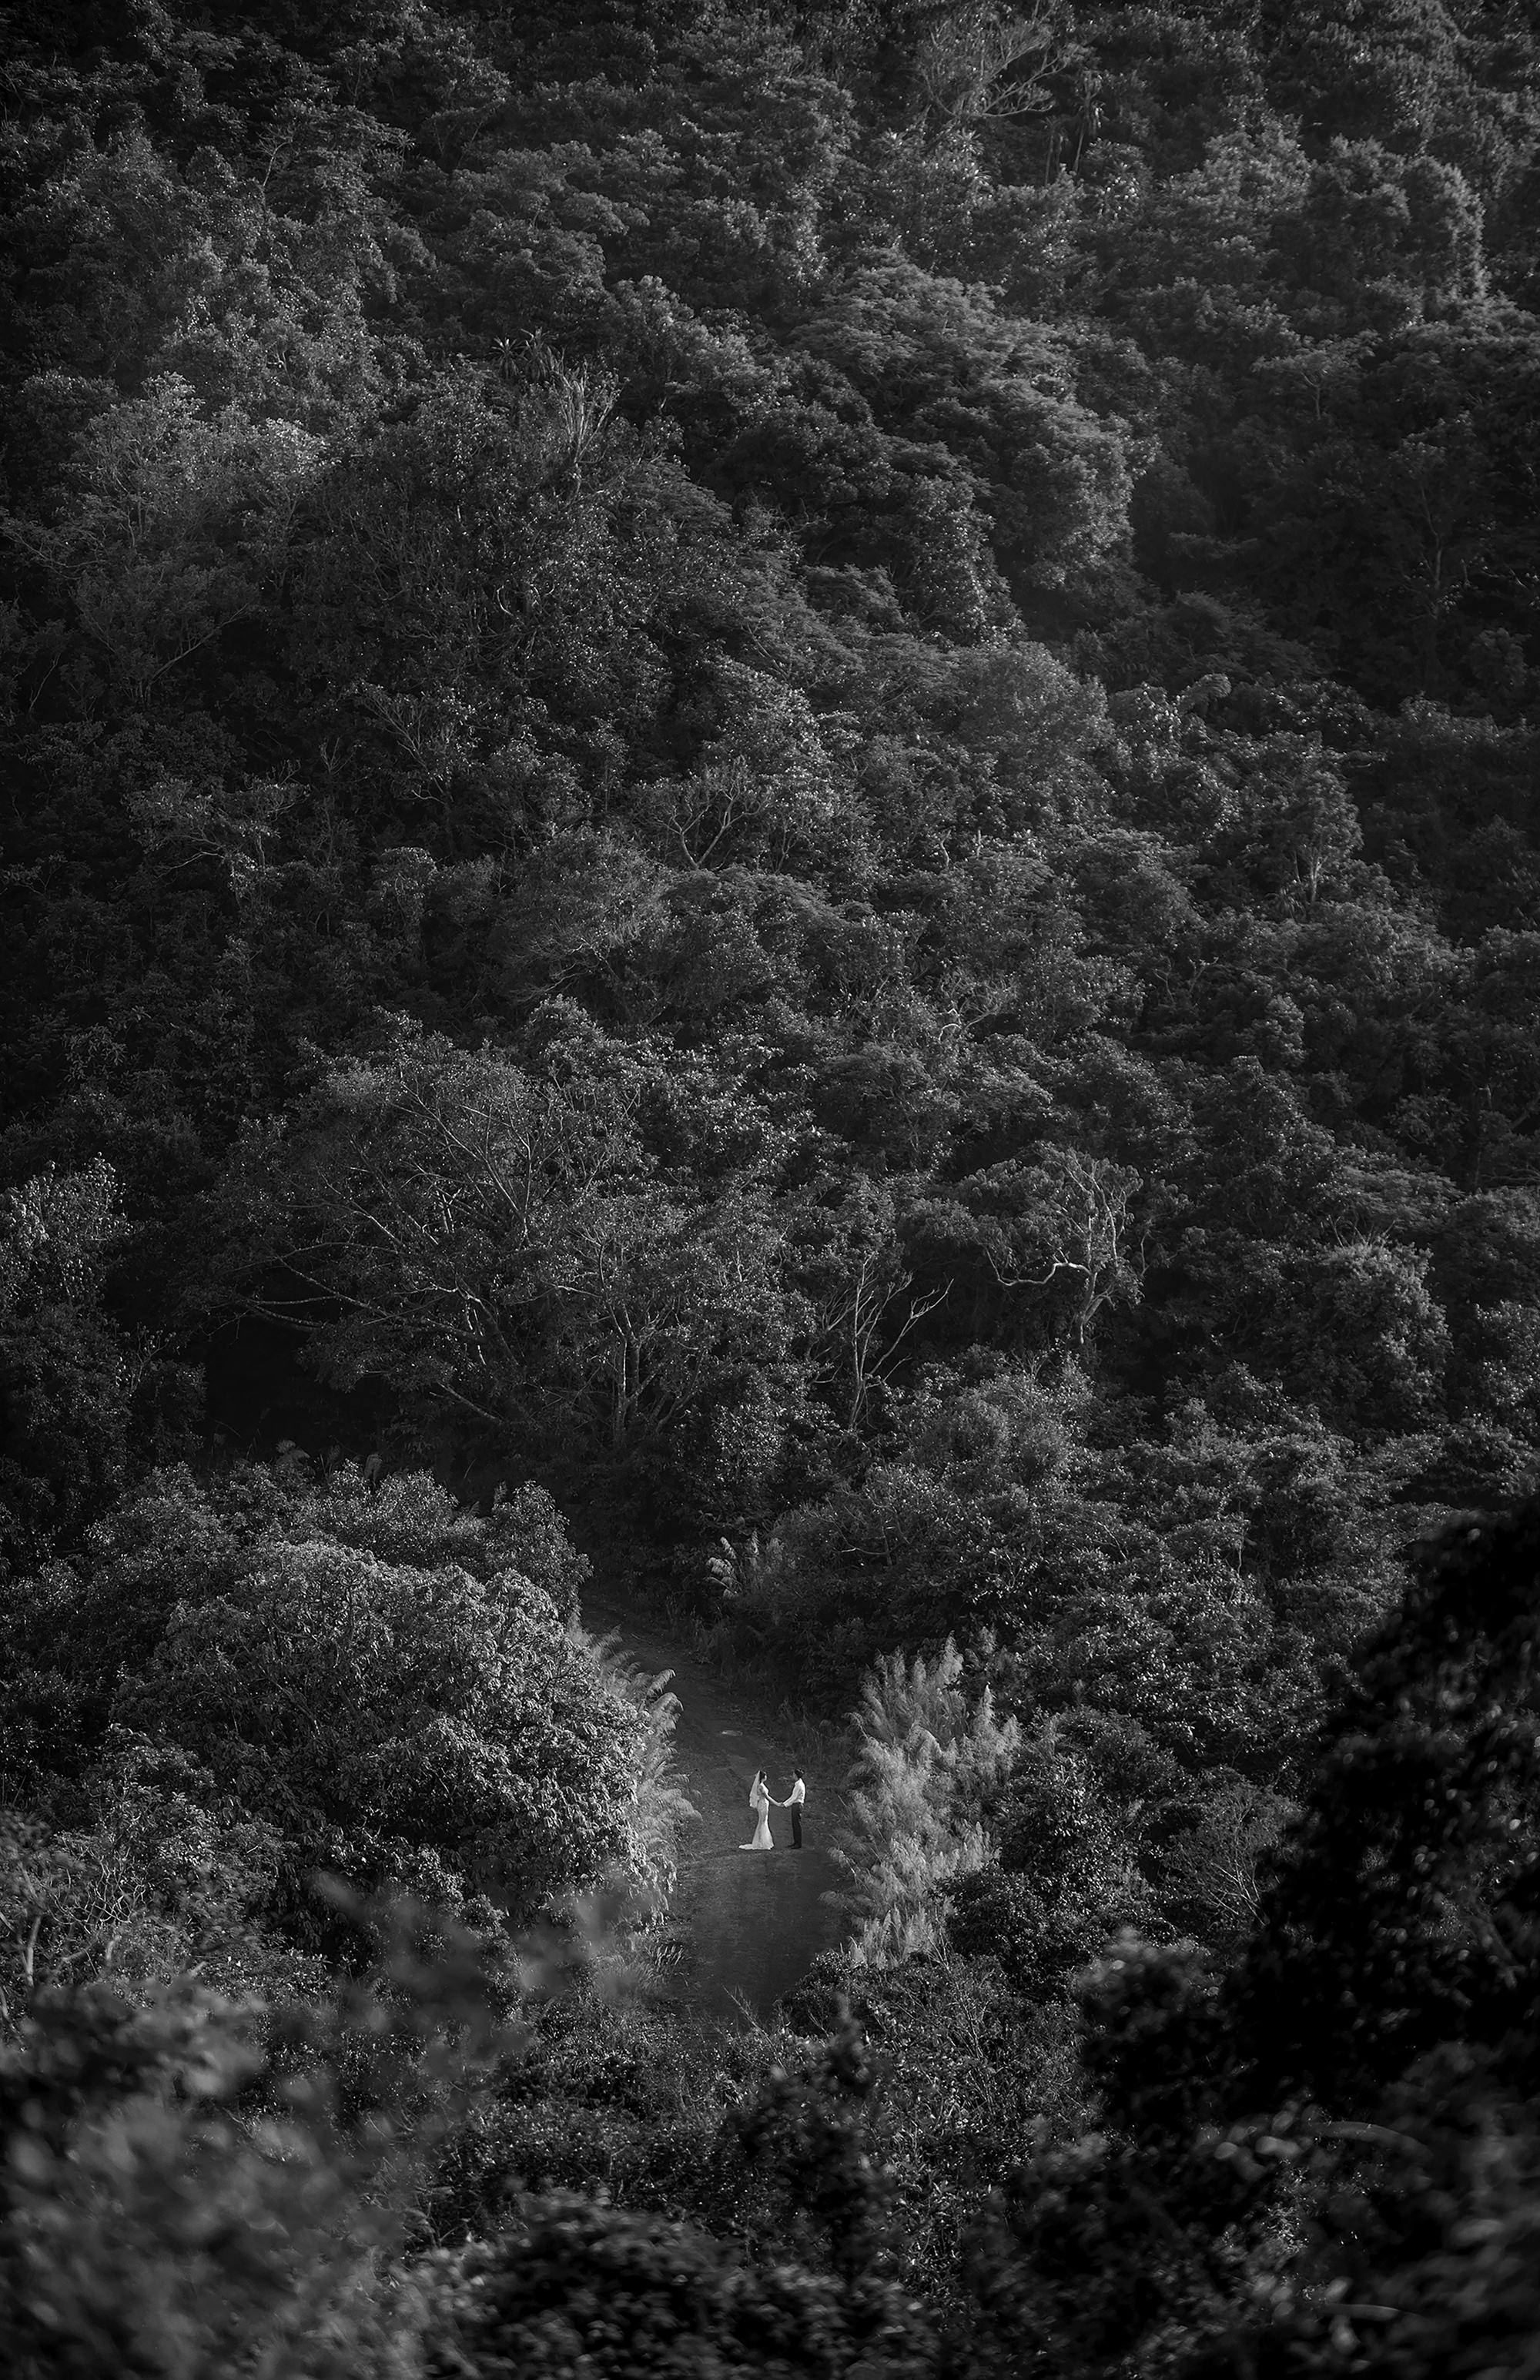 Drone photo of couple alone in forest by 37 Frames - Japan